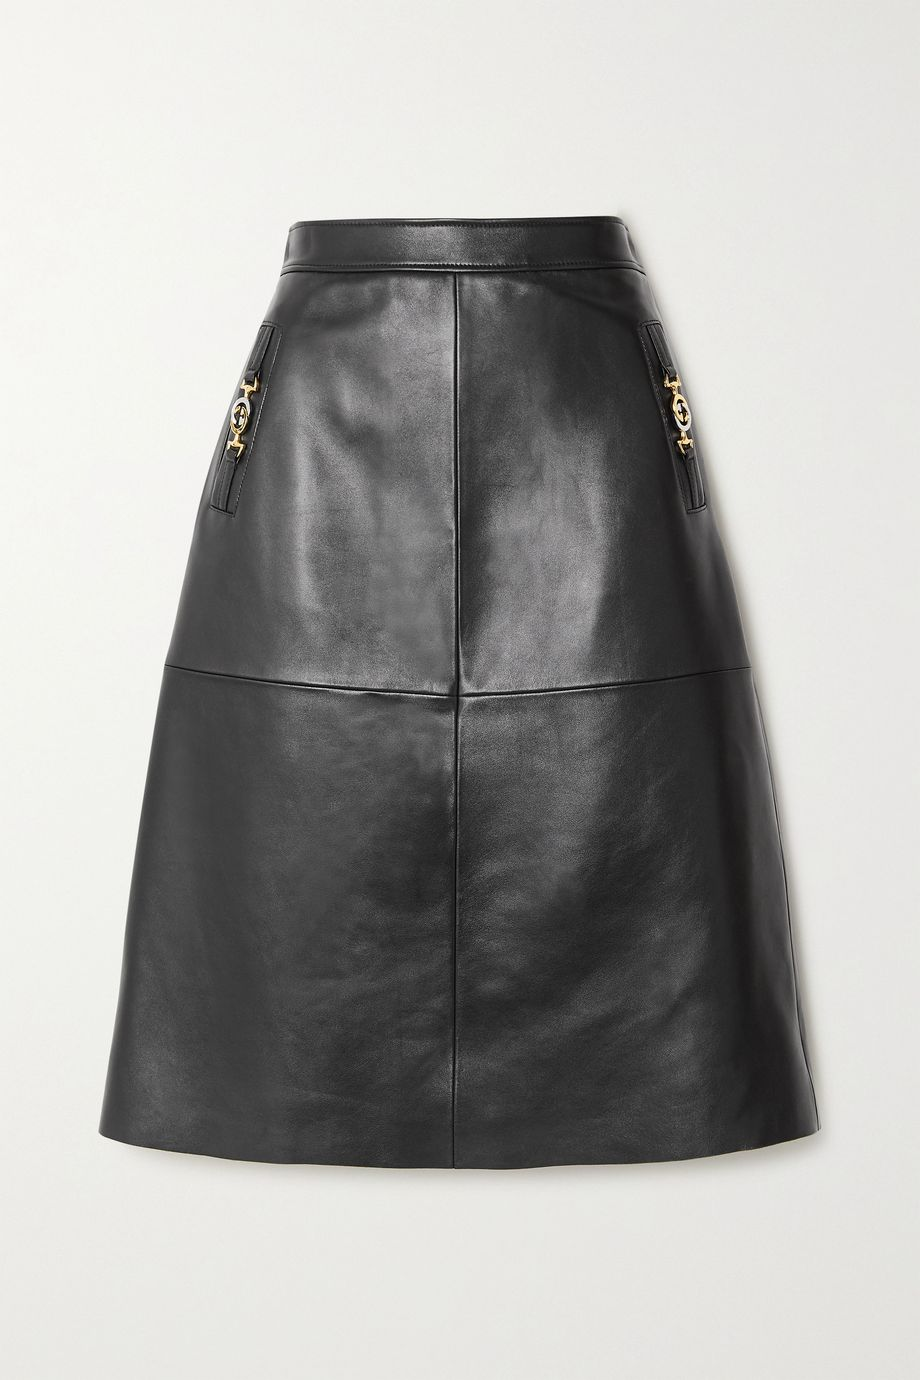 Gucci Embellished paneled leather midi skirt